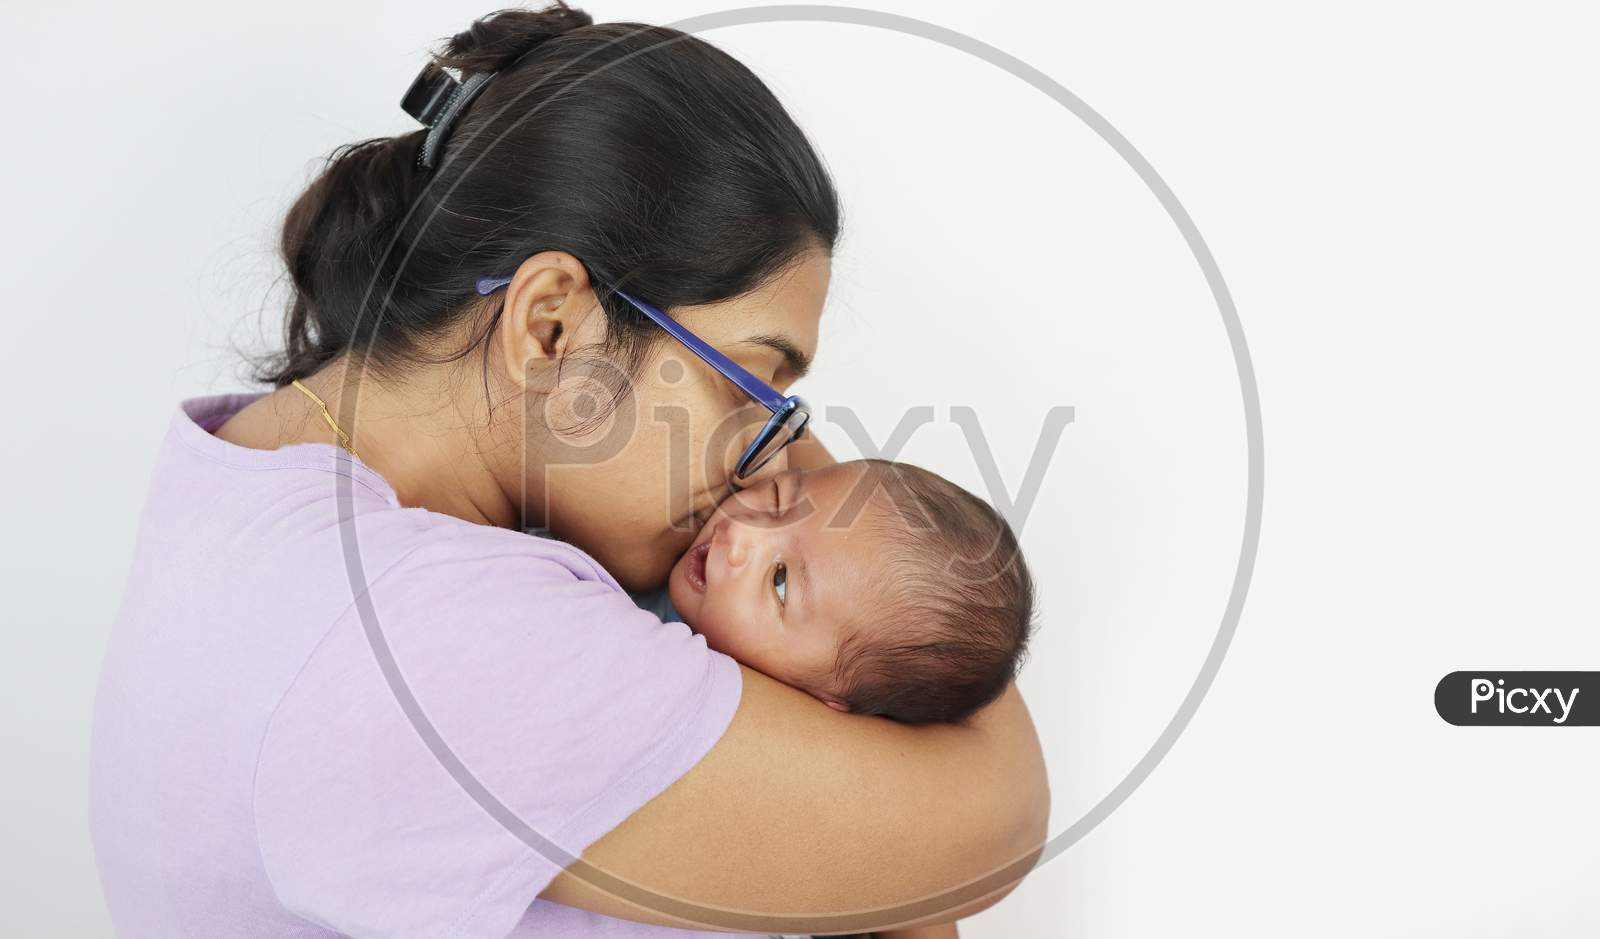 A Young Mother In Spectacles Kissing Her Infant Baby Boy In Her Lap In Solid Grey Background With Space For Text. Mothers Day Concept Photo.